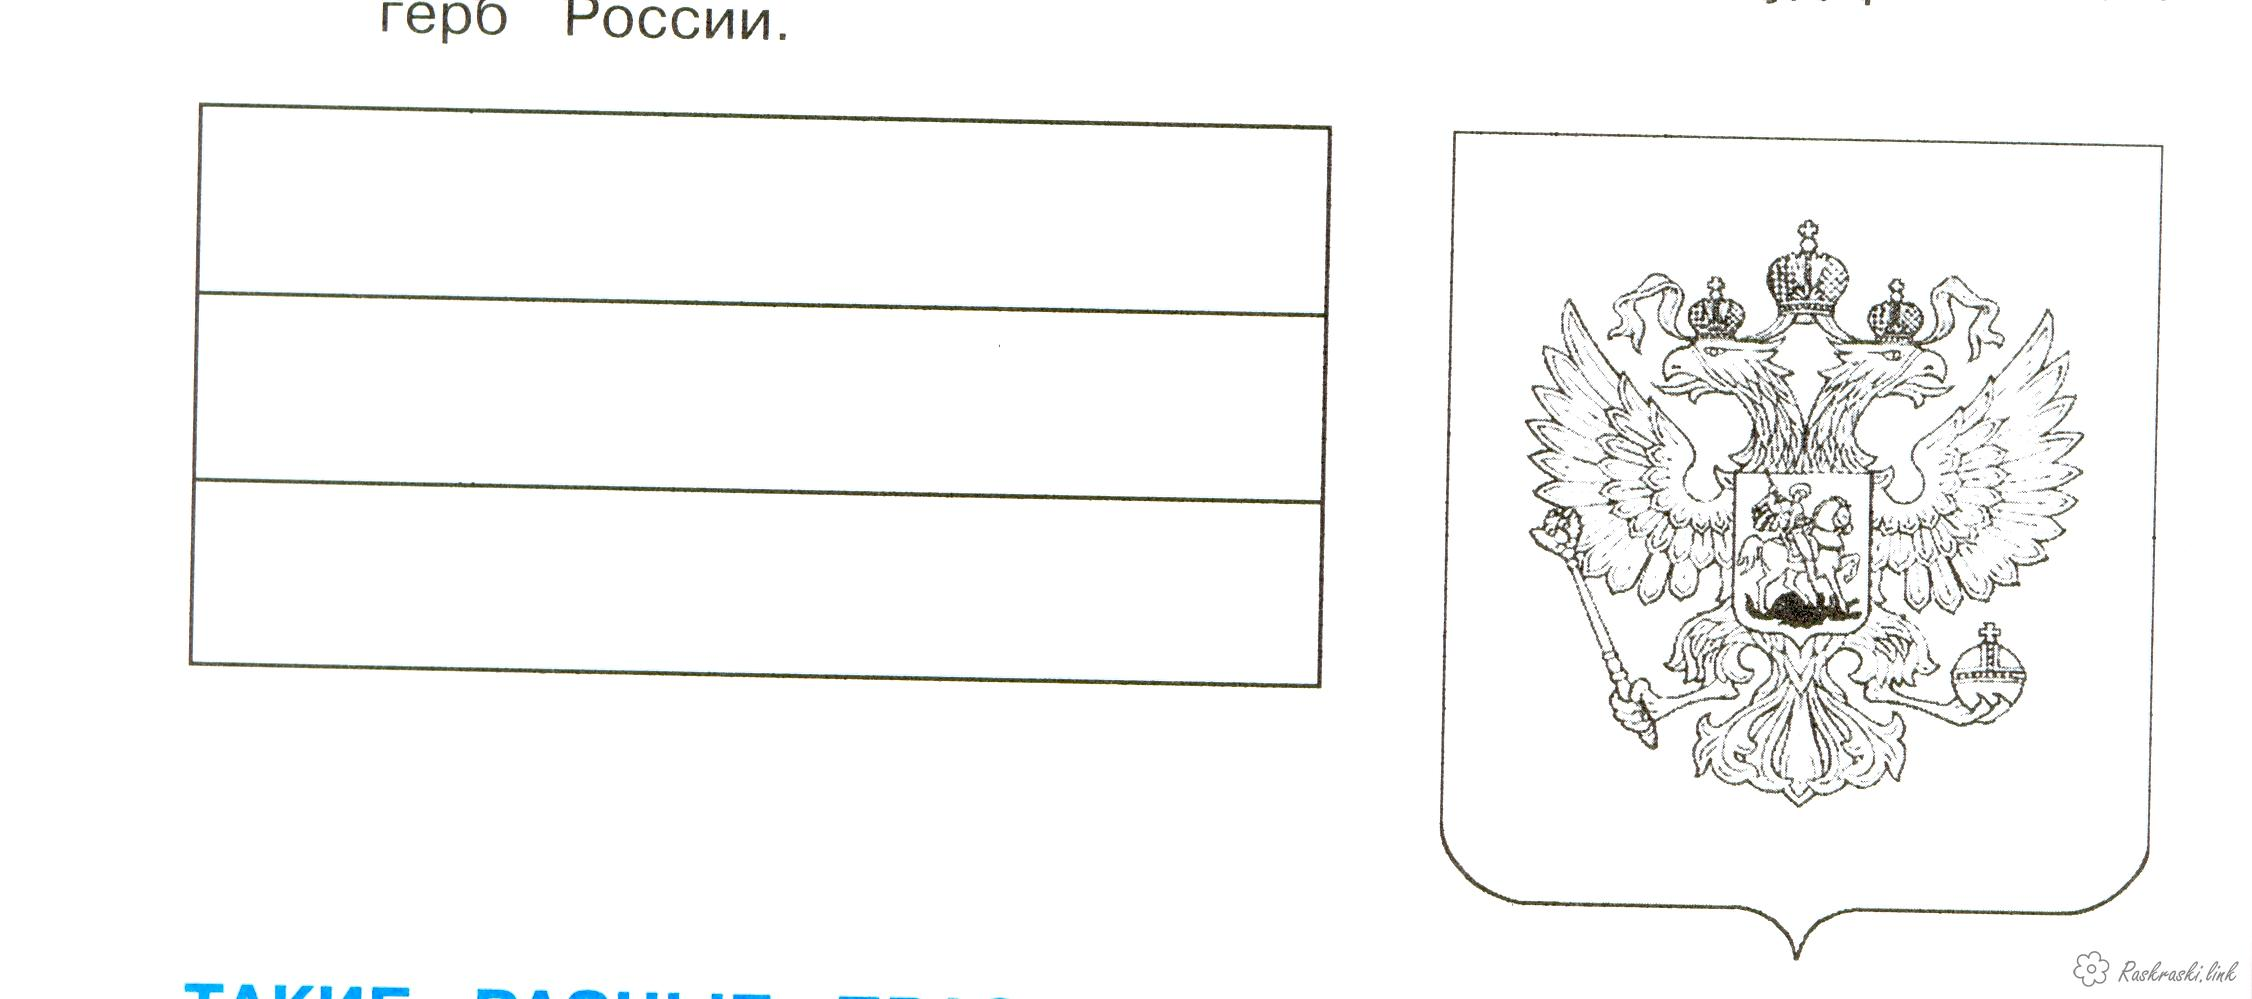 Coloring flag The coloring pages of the coat of arms and flag of the Russian Federation